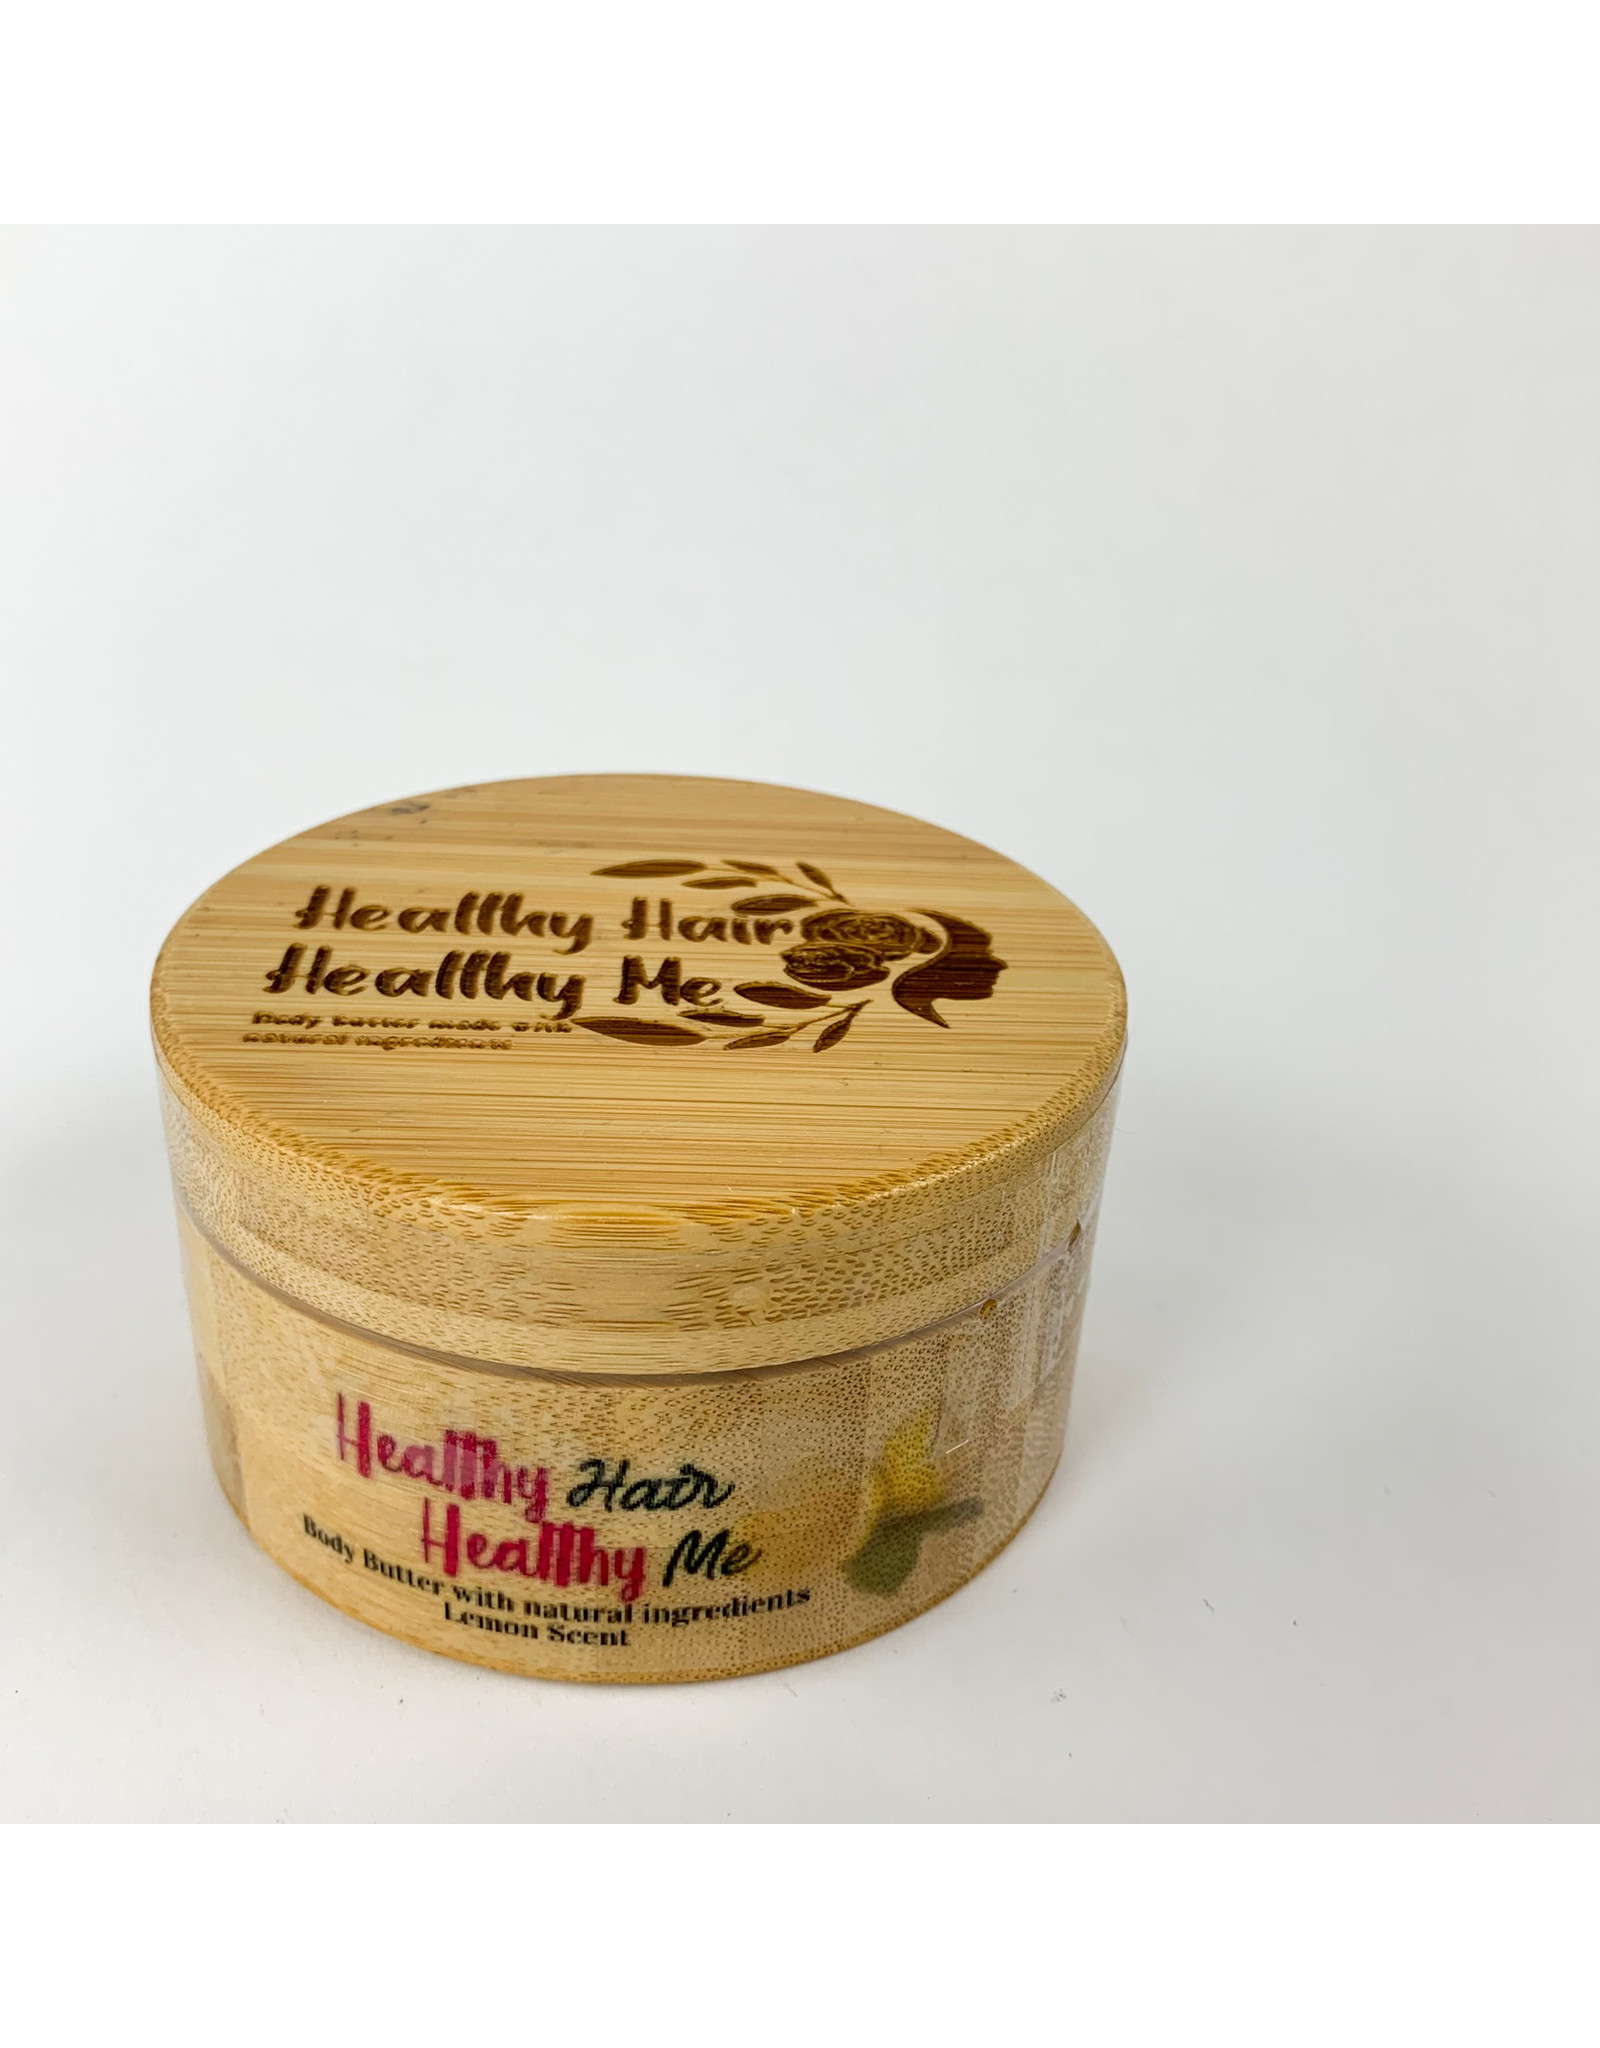 Healthy Hair Healthy Me Strawberry Body Butter 6oz